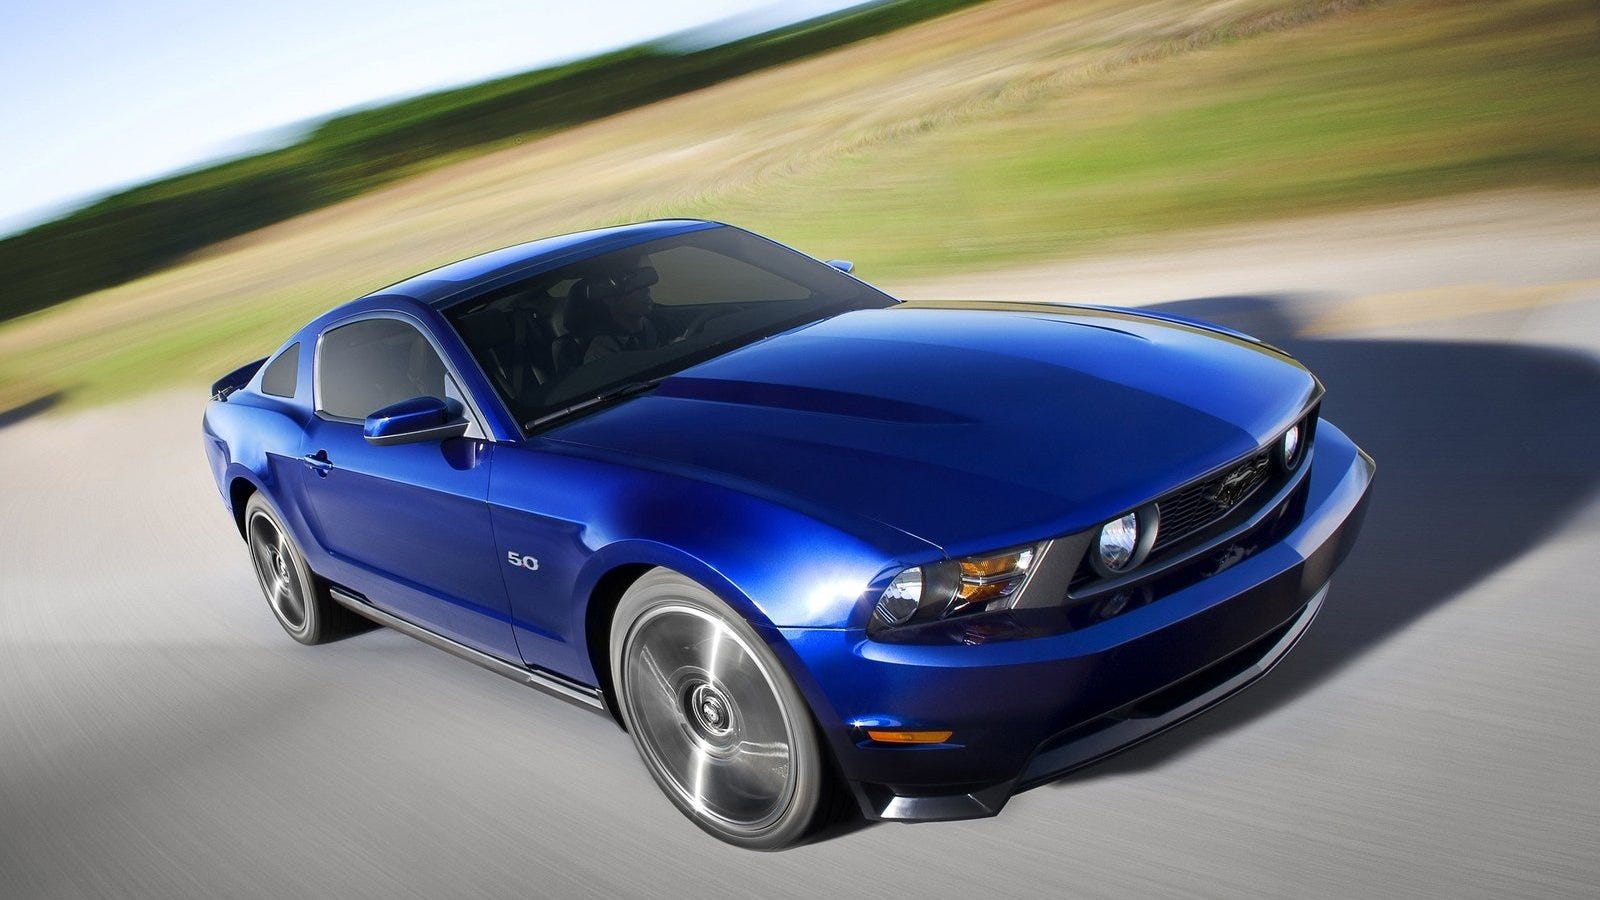 You can get a 412 horsepower 5 0 ford mustang for half the price of a new one